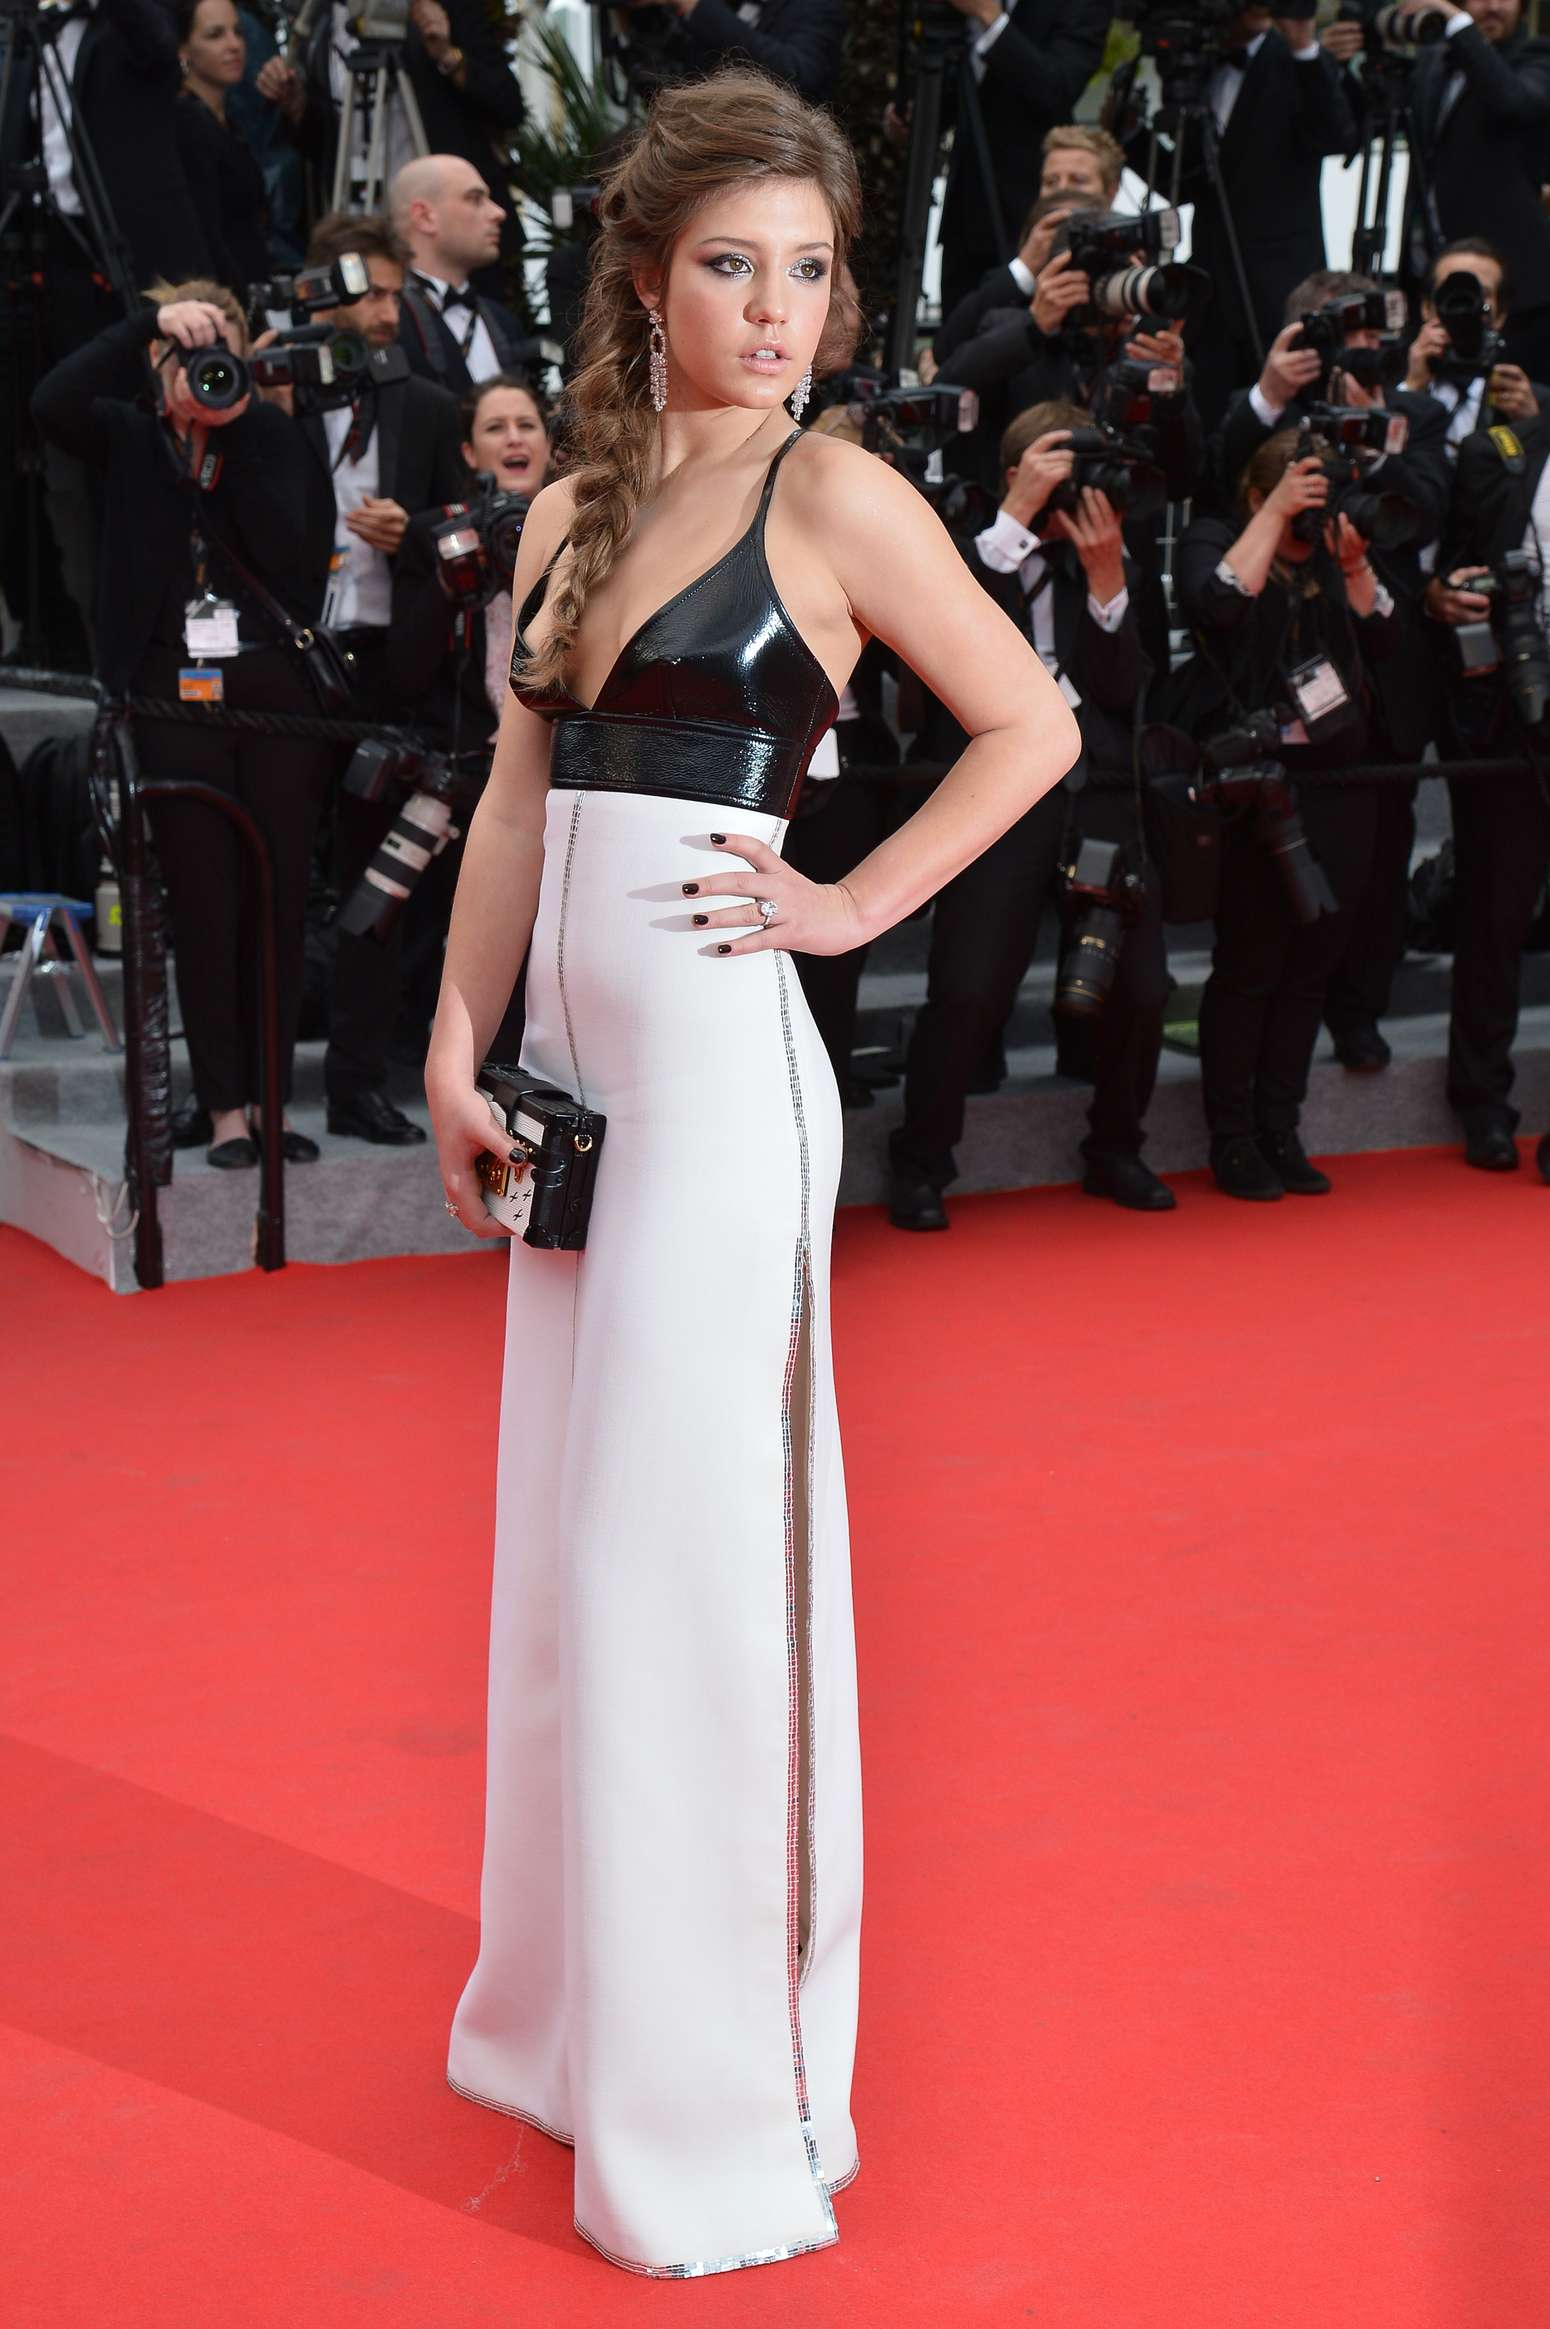 Adele Exarchopoulos Cannes 2014 02 Gotceleb